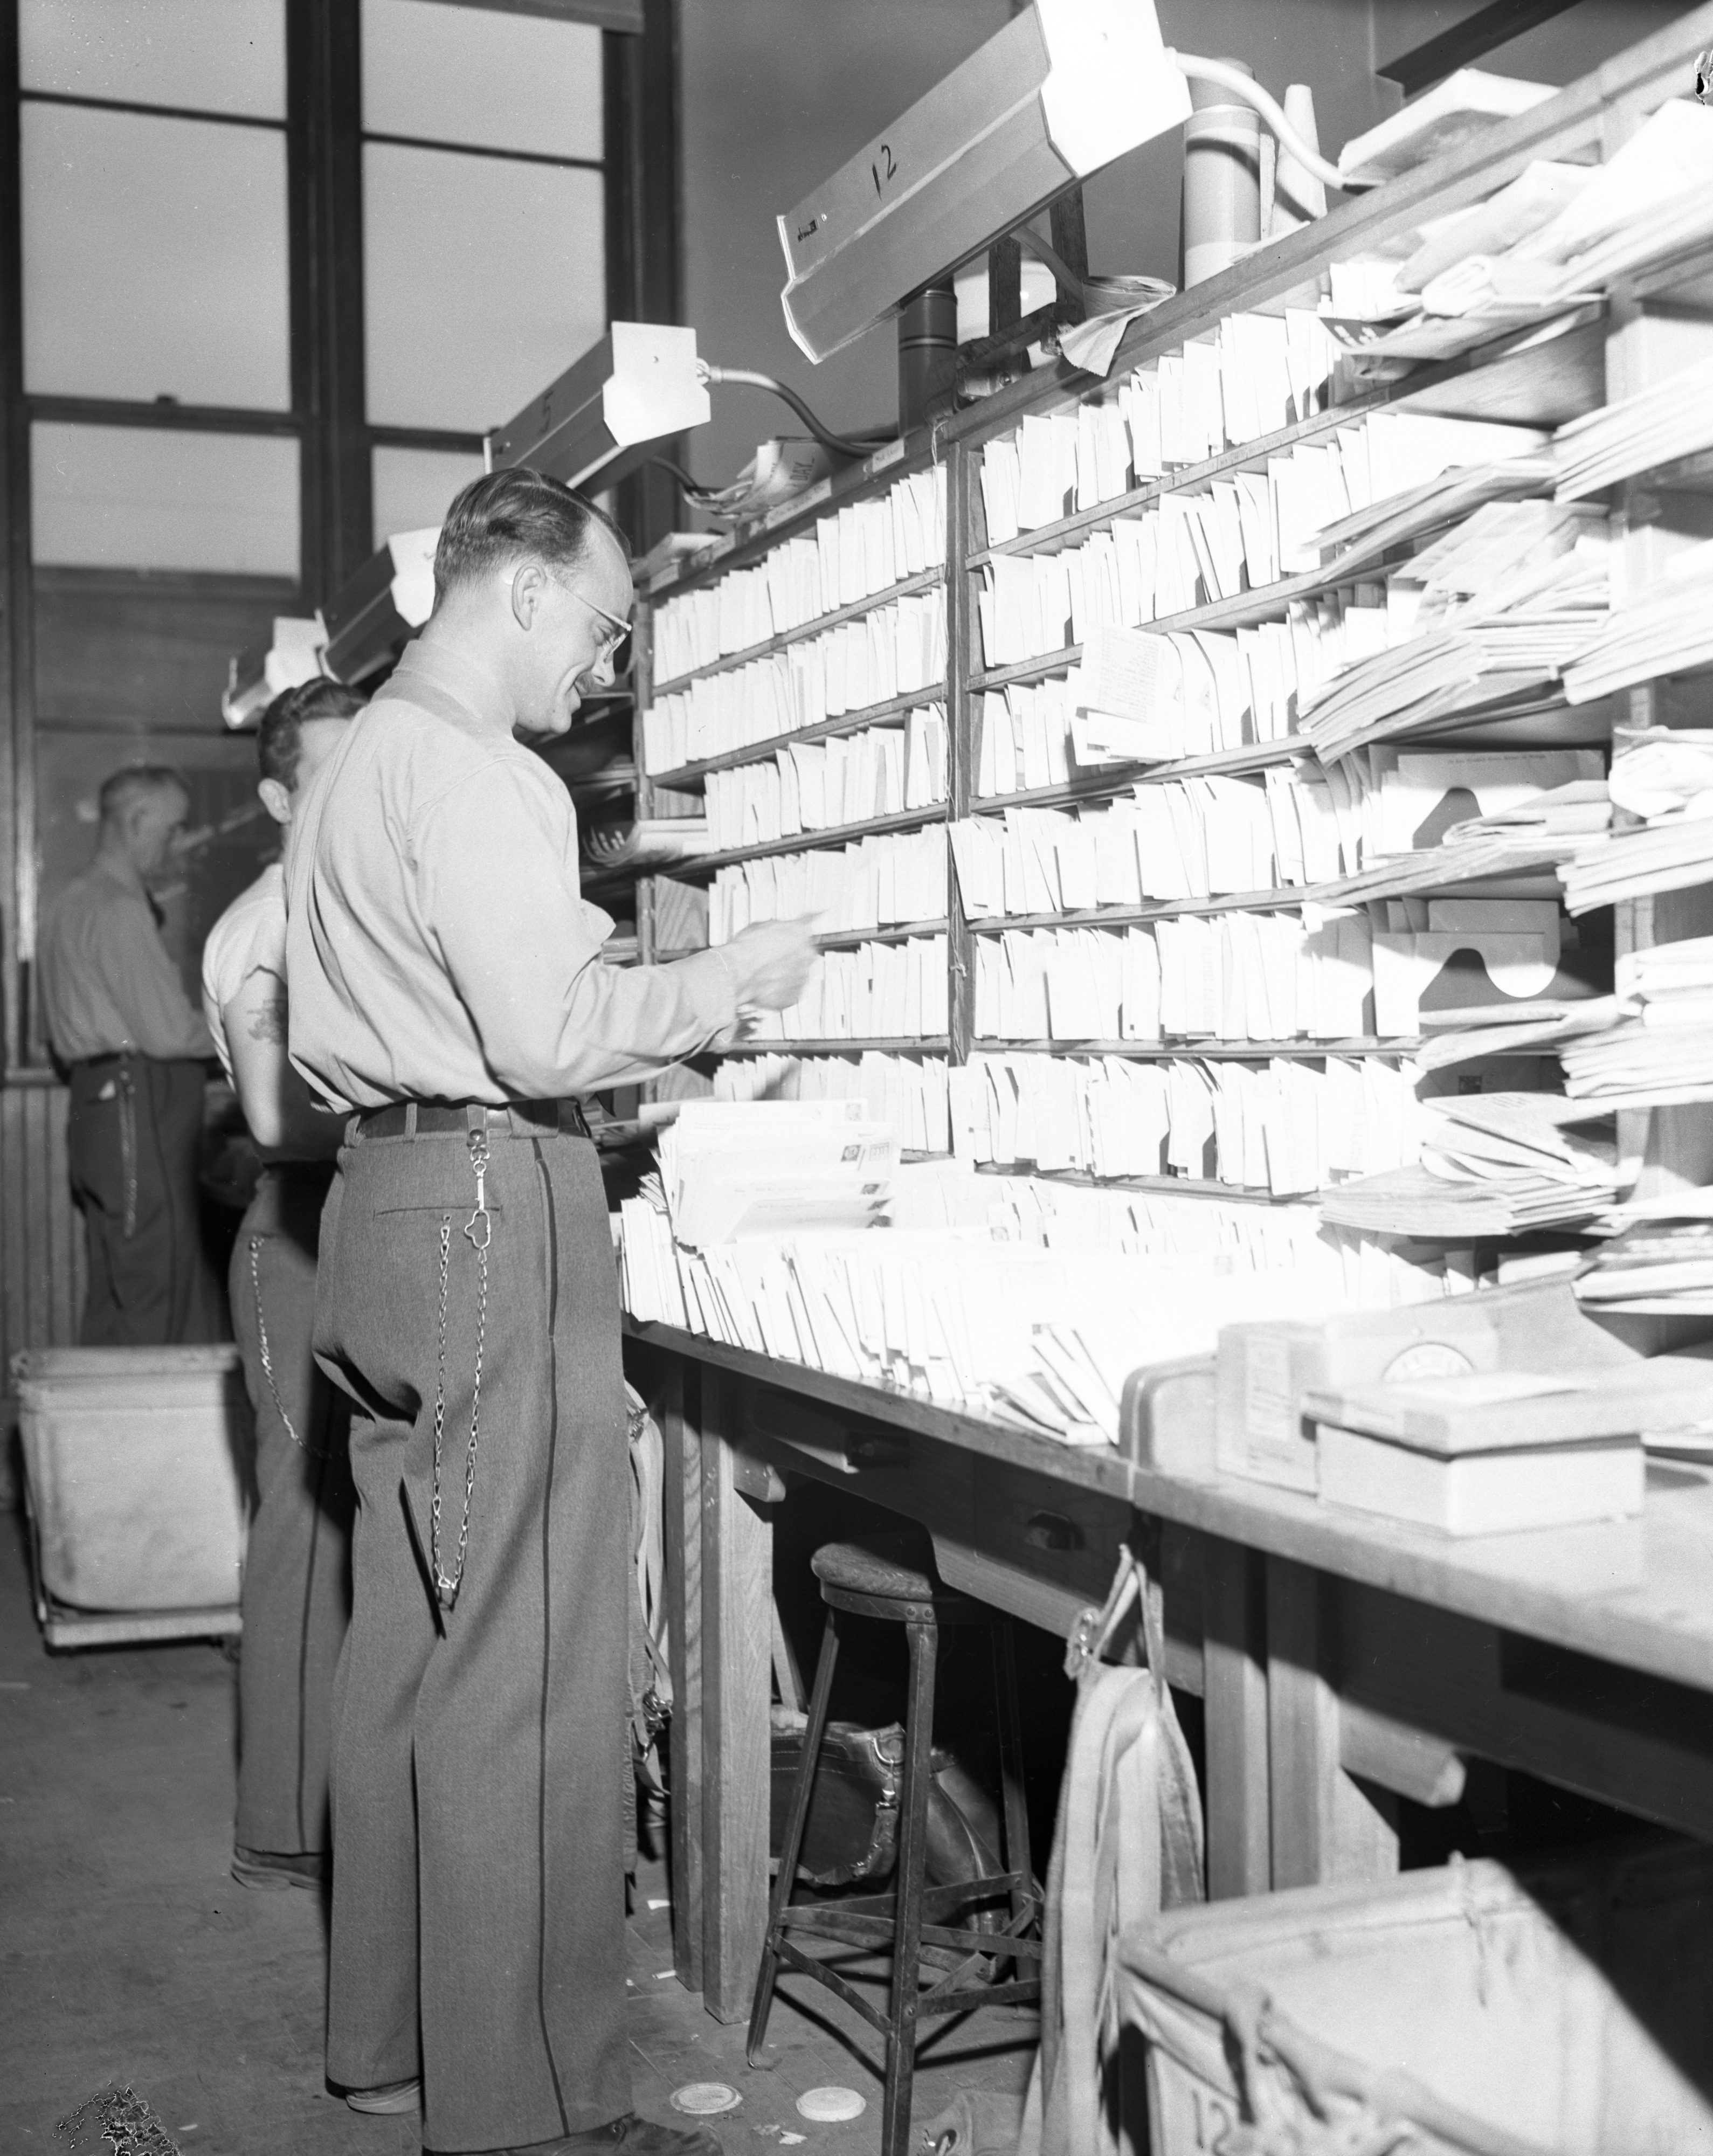 A postman looks over his load at the Ann Arbor Post Office during Christmas rush, December 1955 image